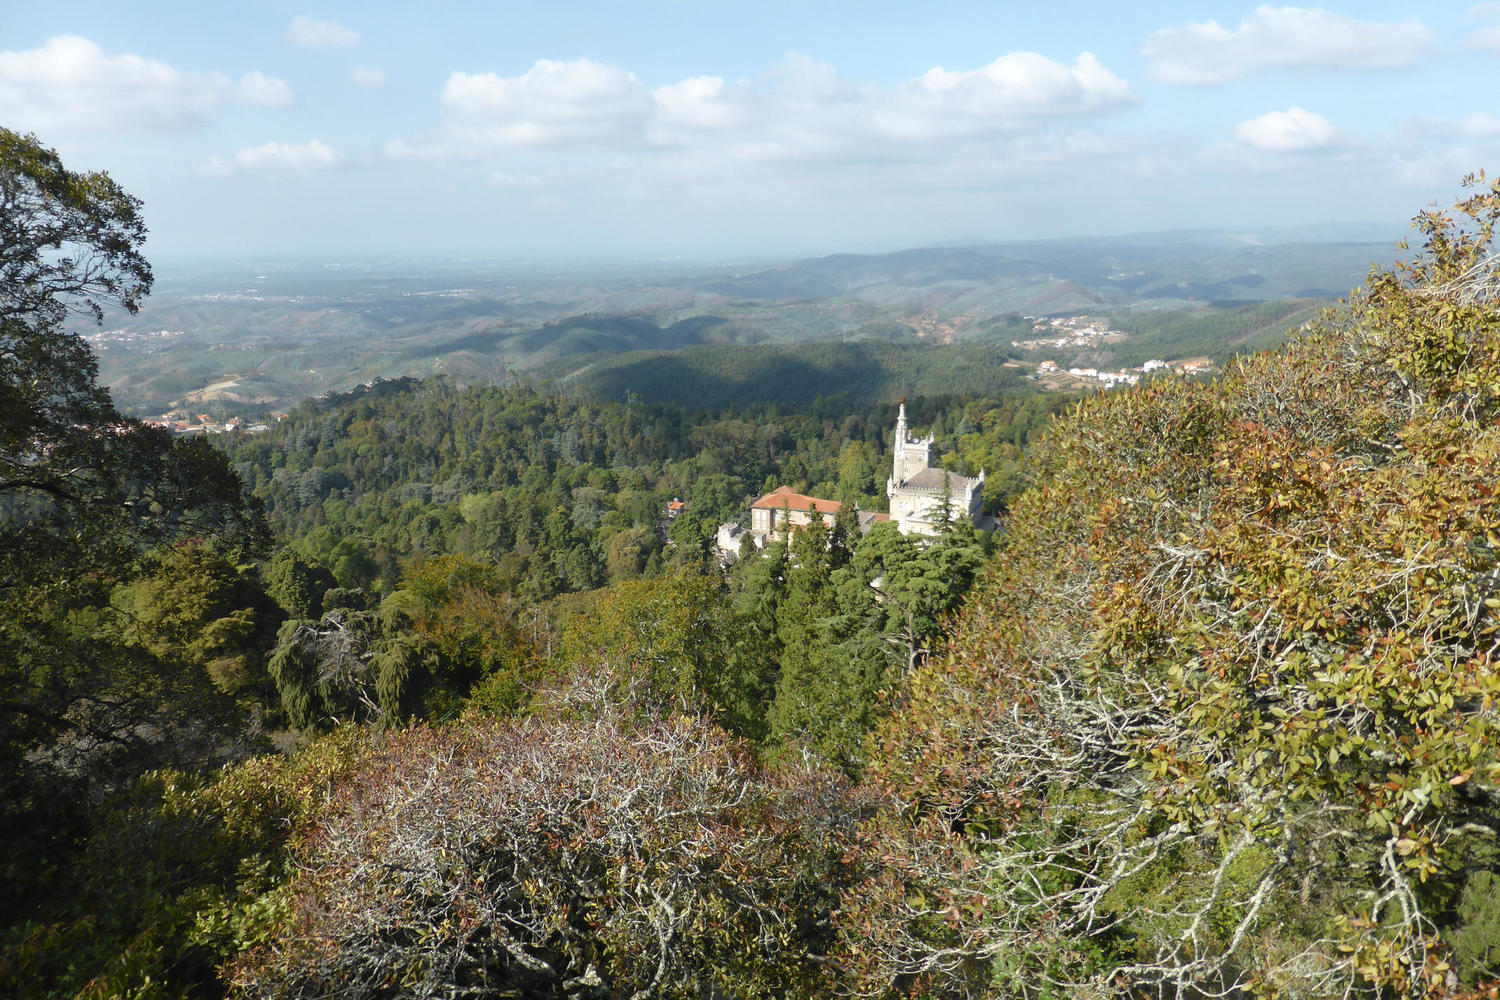 Looking down on the Bussaco Palace from the Cruz Alta viewpoint